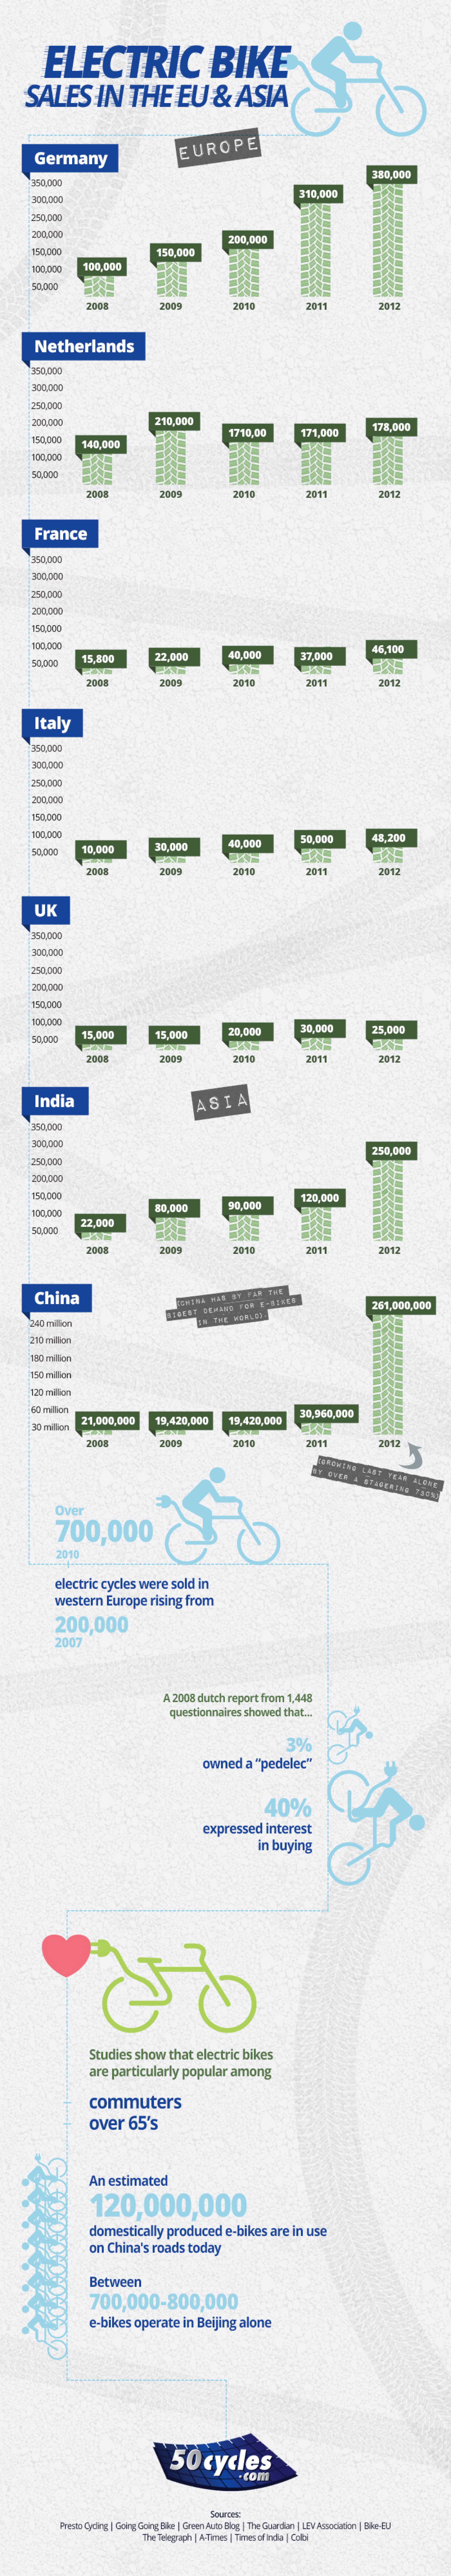 Electric Bike sales in the EU & Asia Infographic